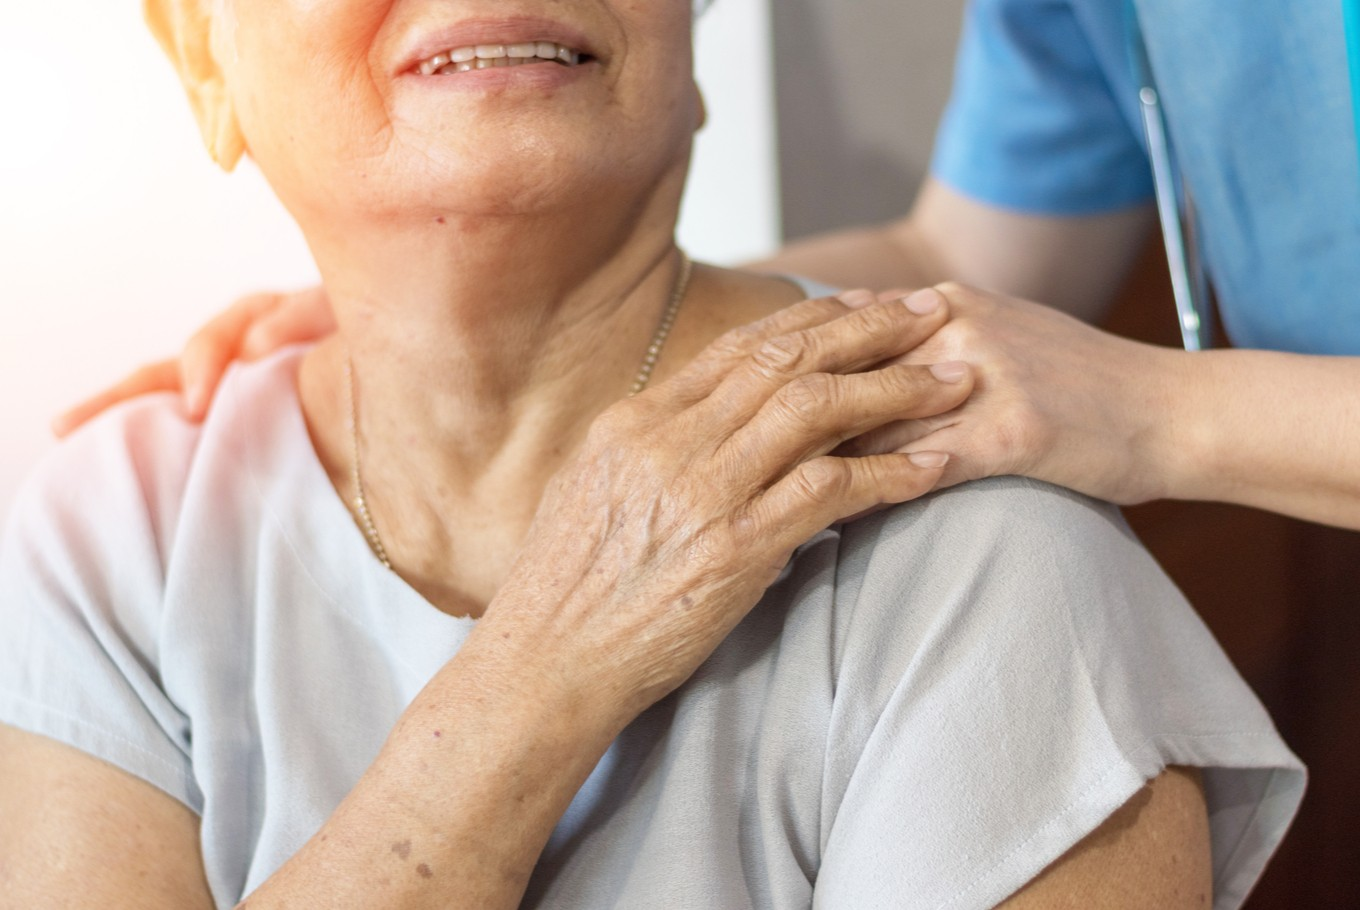 Elderly: 9% we rarely talk about